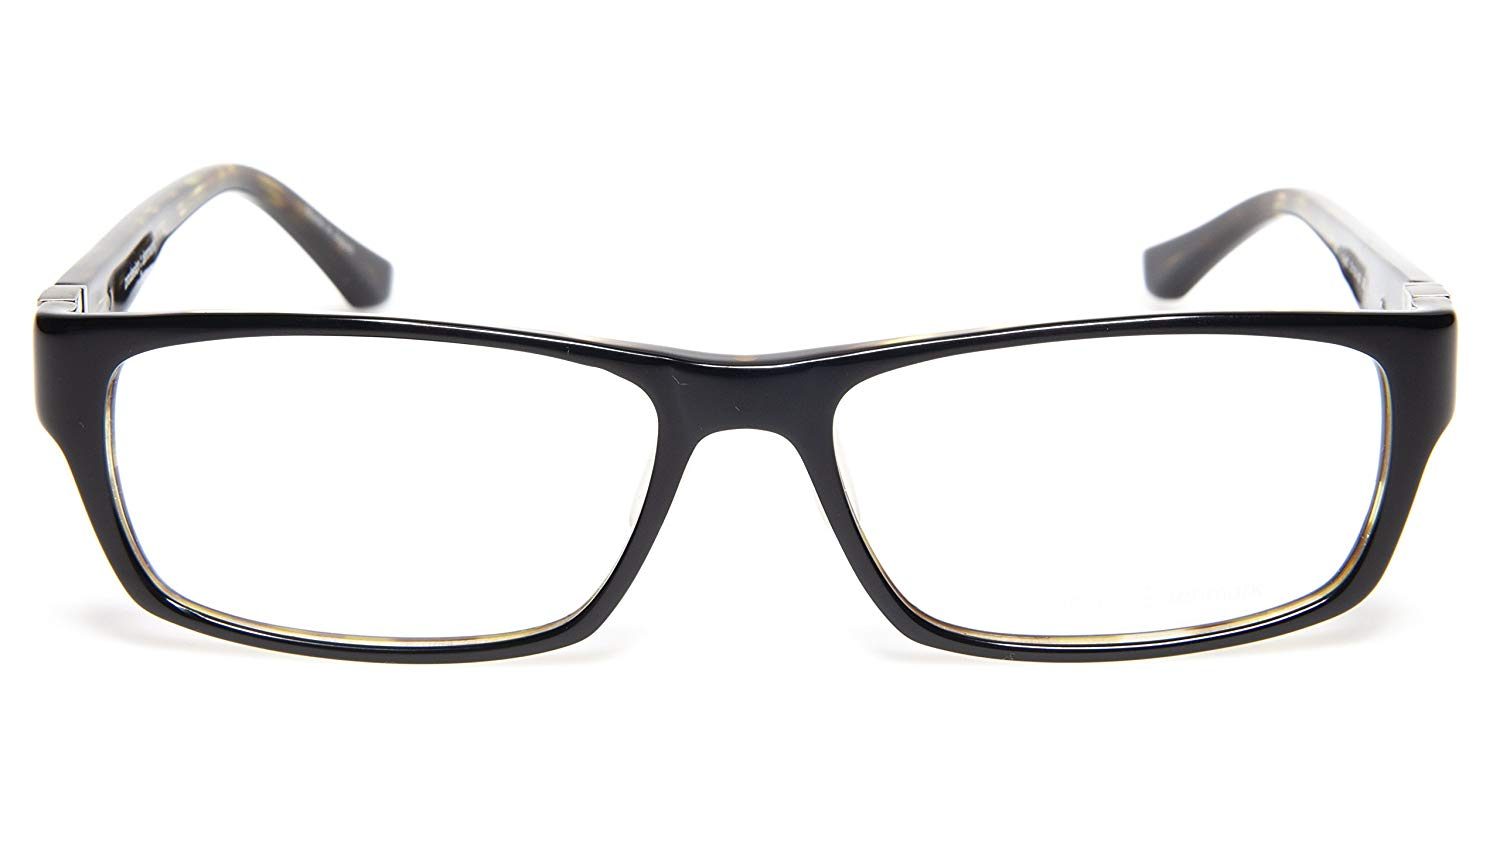 14c4ae1fa4 Get Quotations · NEW PRODESIGN DENMARK 7607 1 c.6022 BLACK EYEGLASSES FRAME  57-16-140